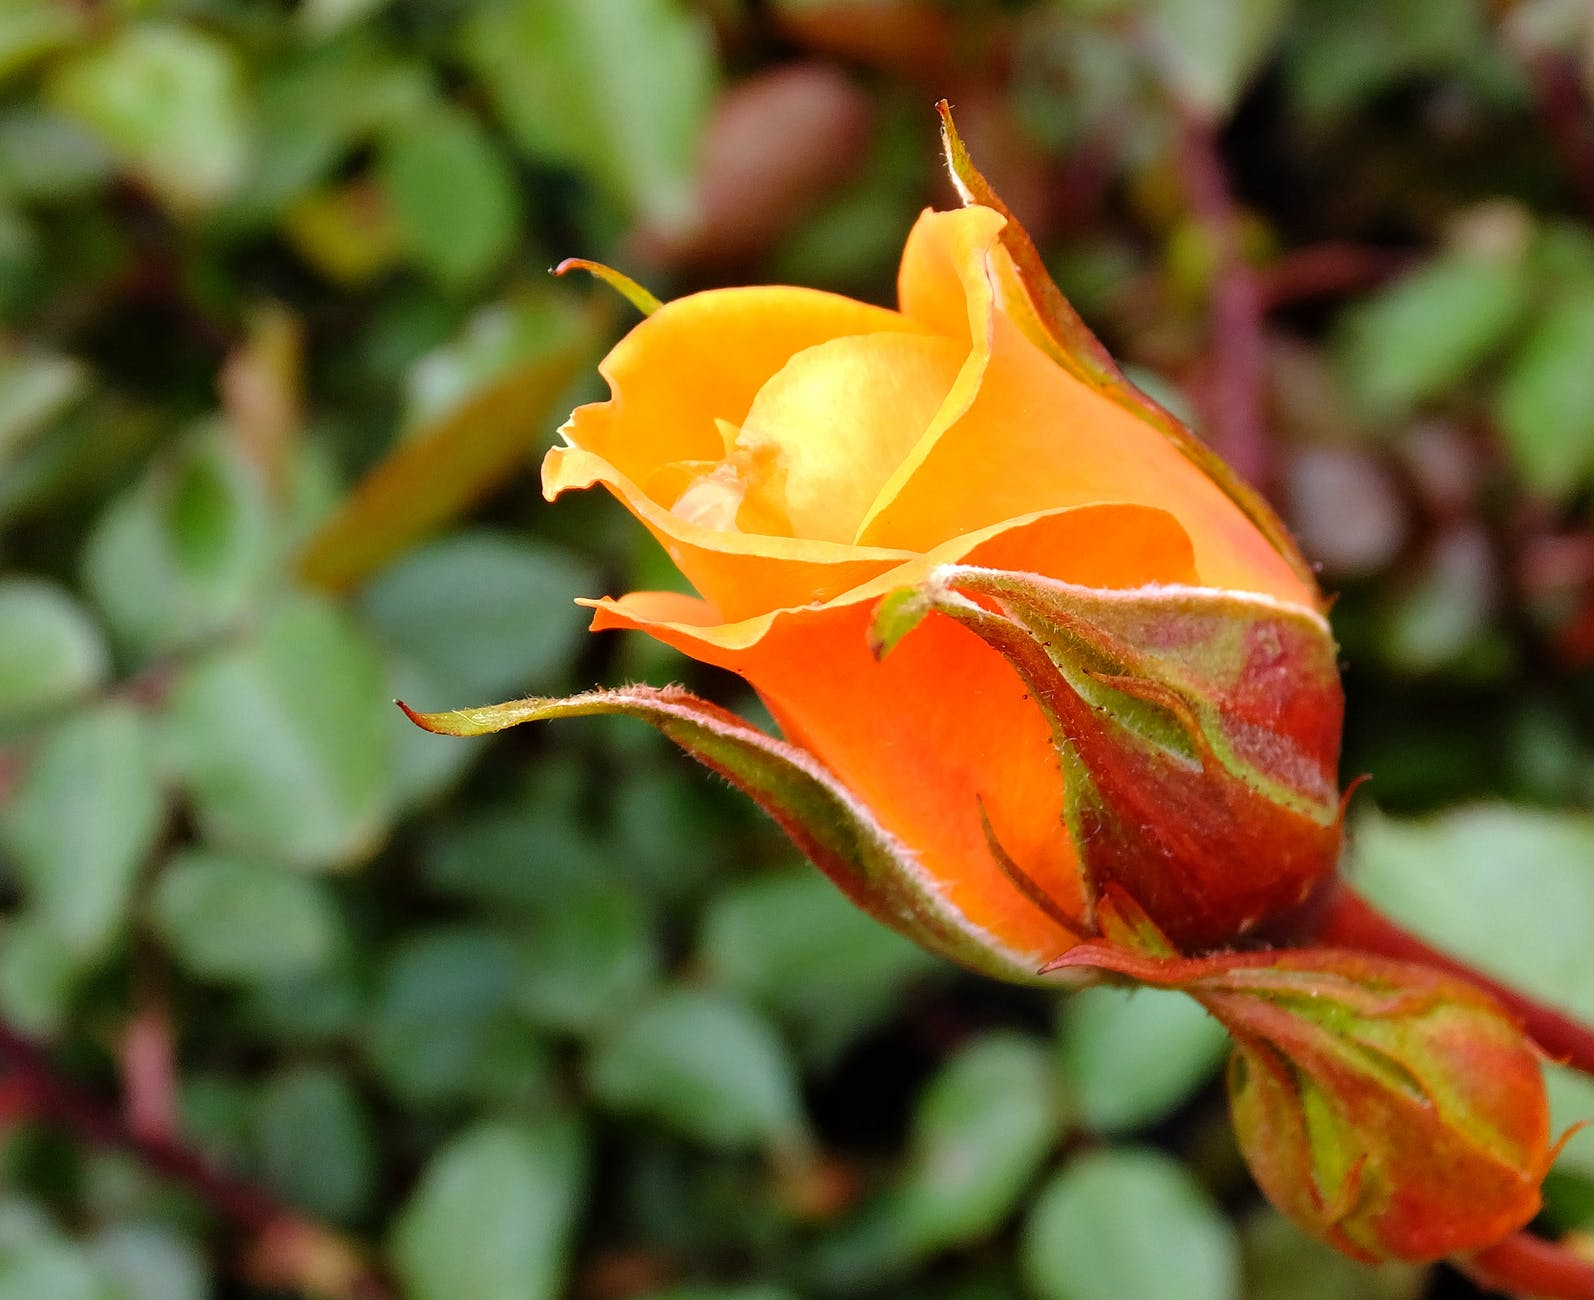 garden orange flower rose